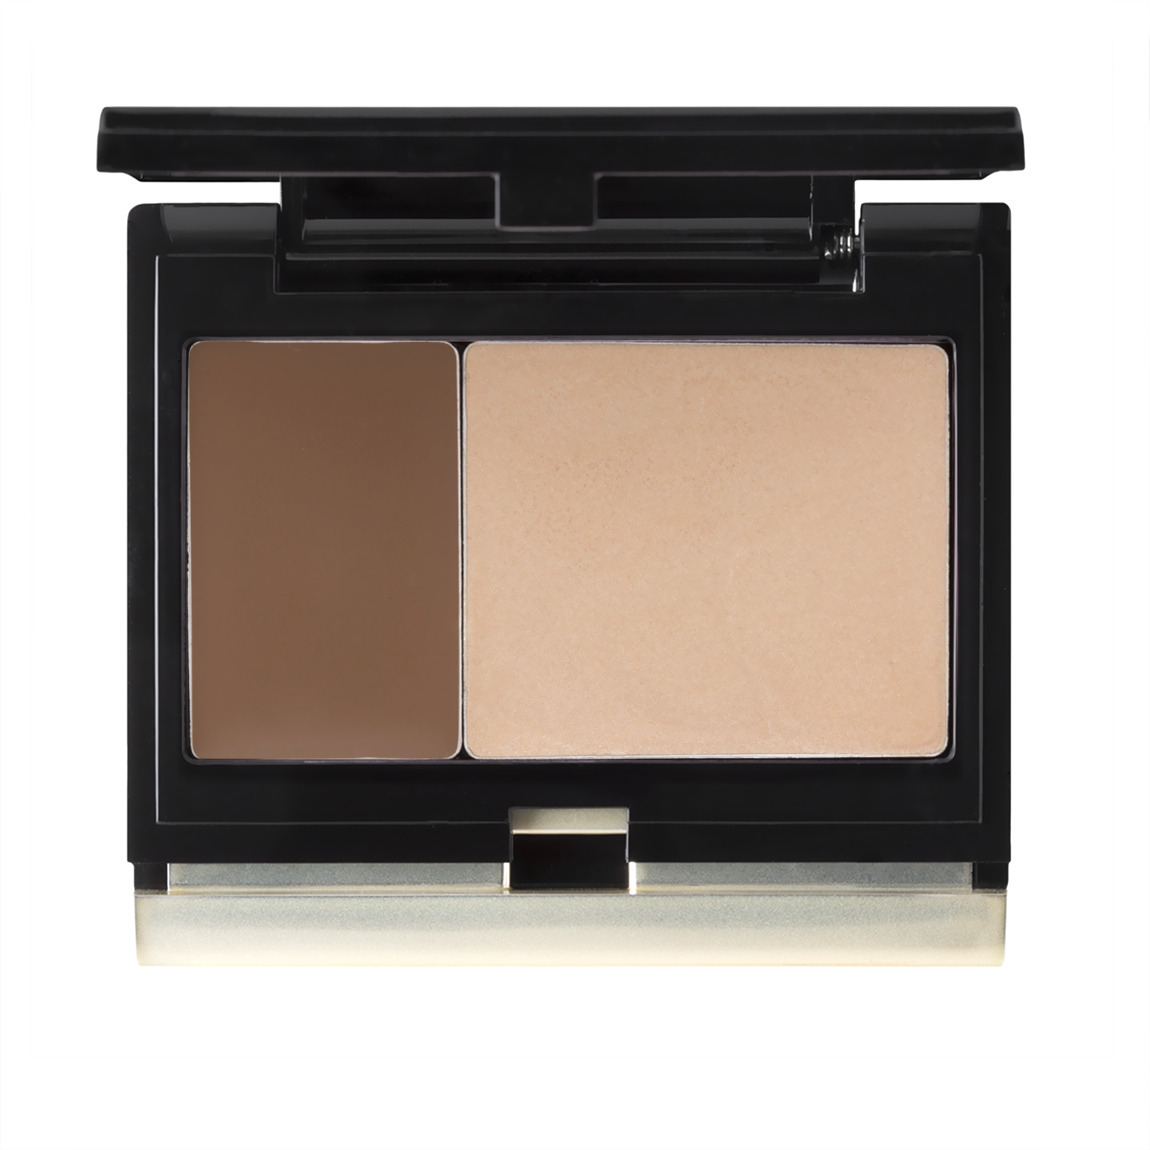 Kevyn Aucoin The Creamy Glow Duo #4 Candlelight/Sculpting product smear.